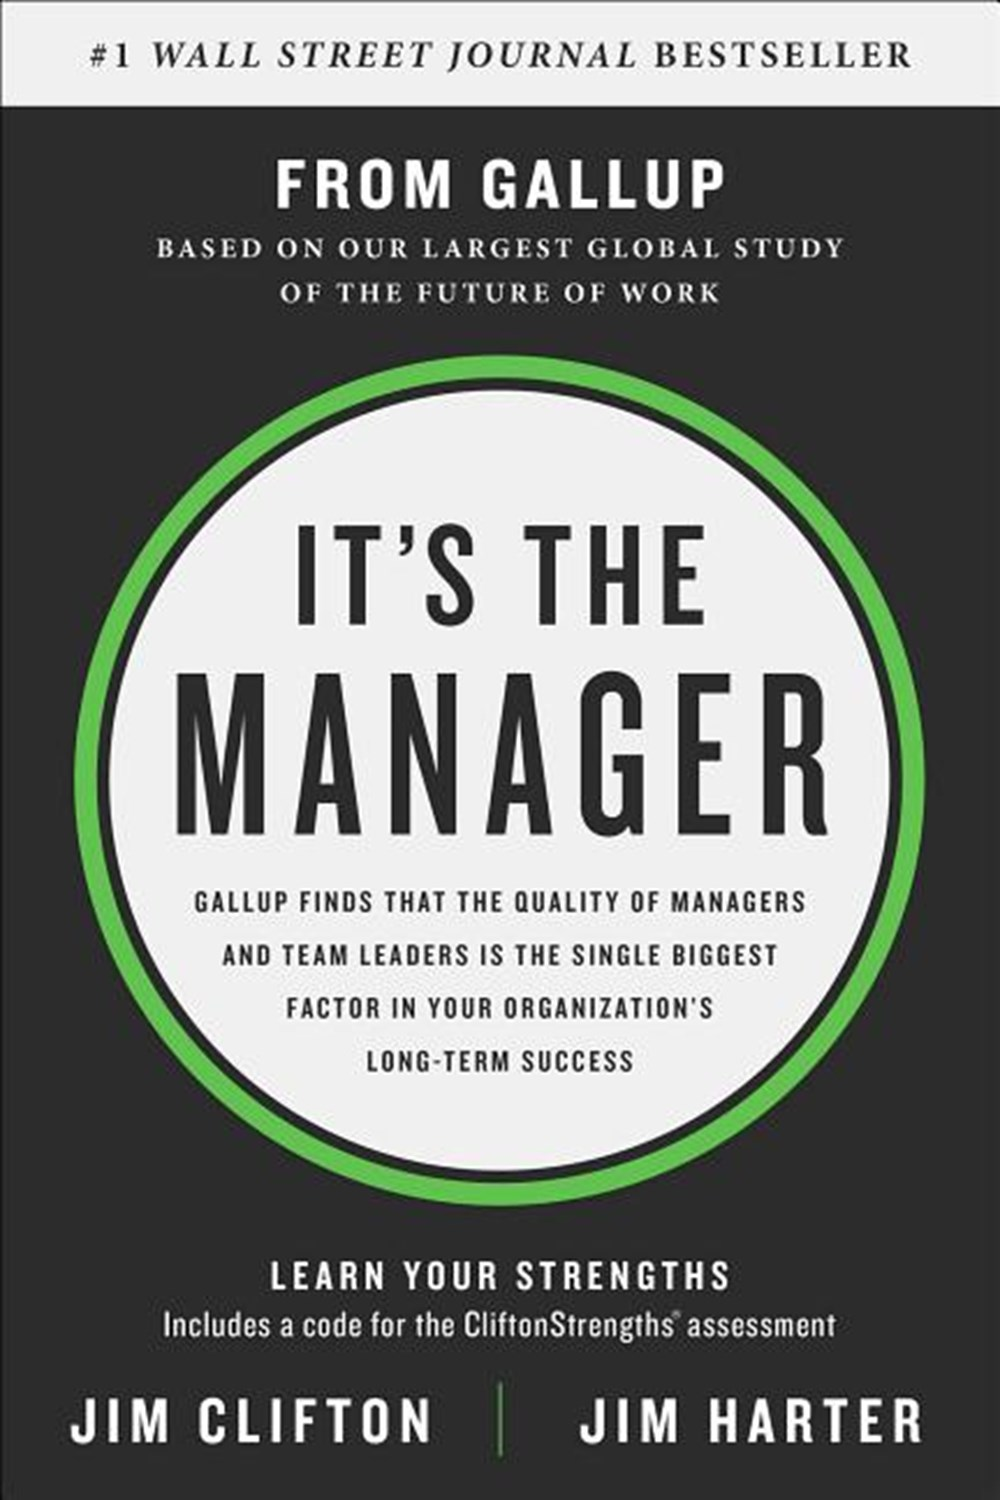 It's the Manager Gallup Finds the Quality of Managers and Team Leaders Is the Single Biggest Factor